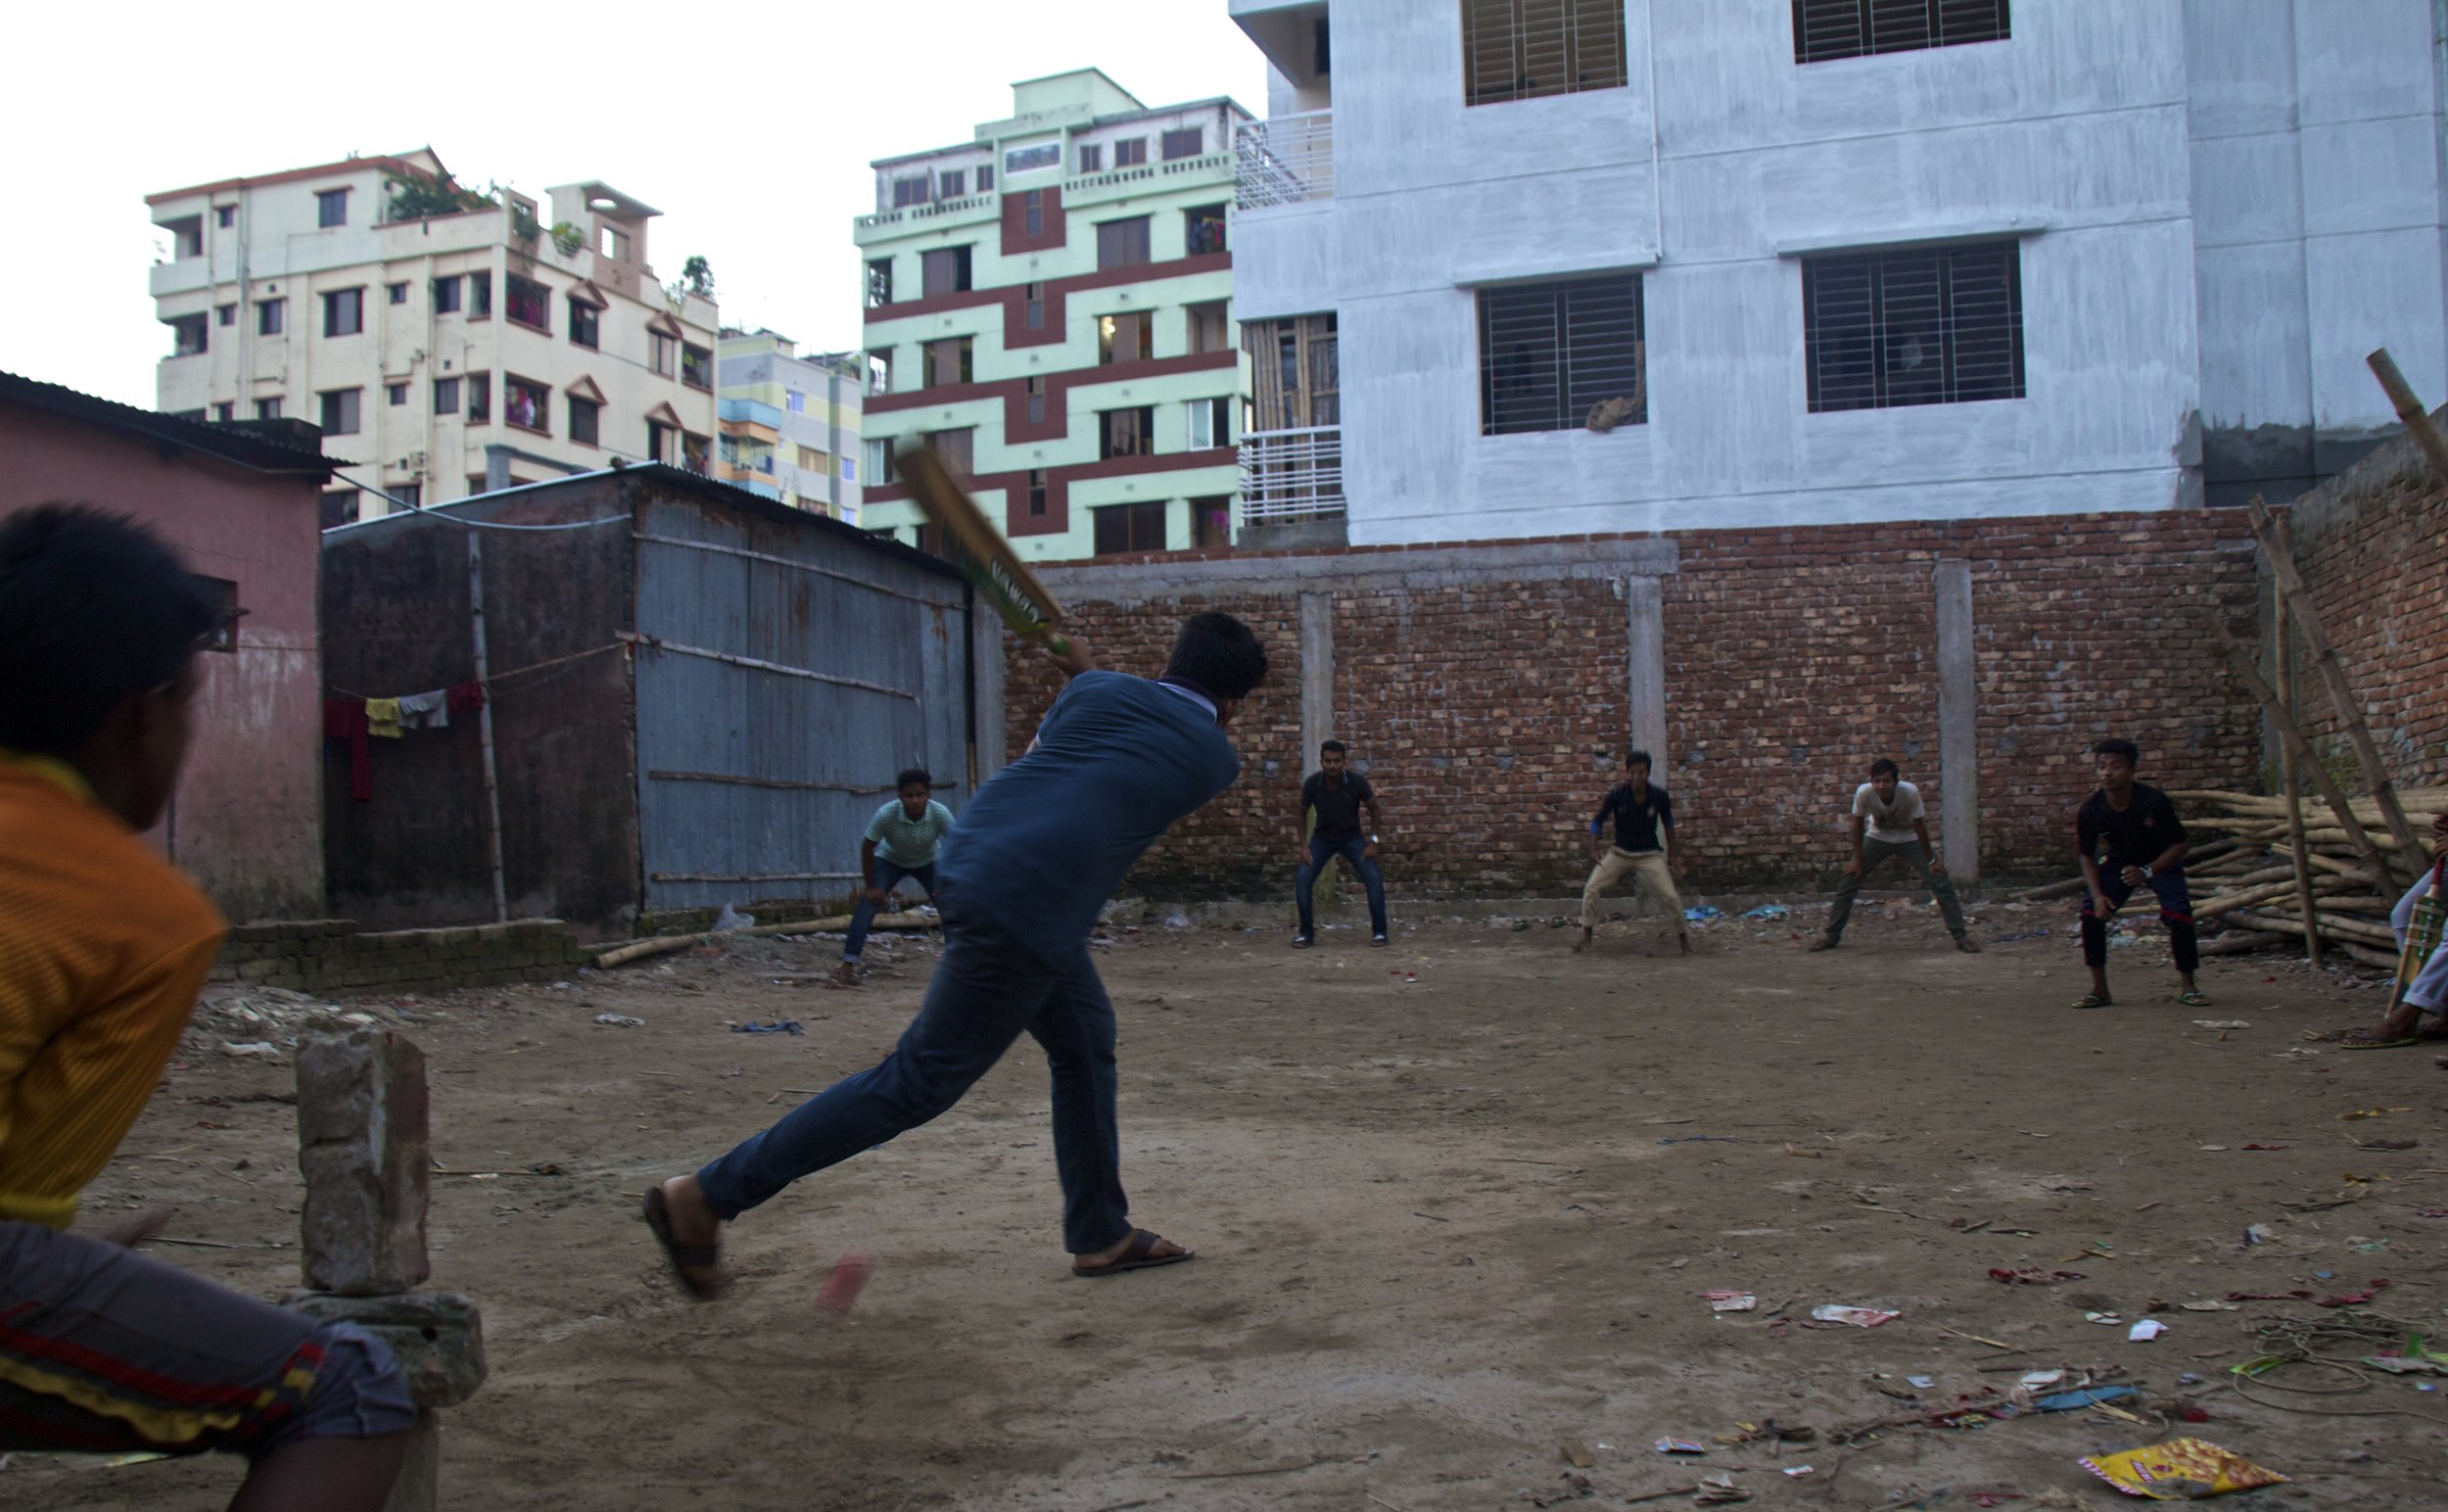 rayer bazar dhaka slums playing cricket 5.jpg